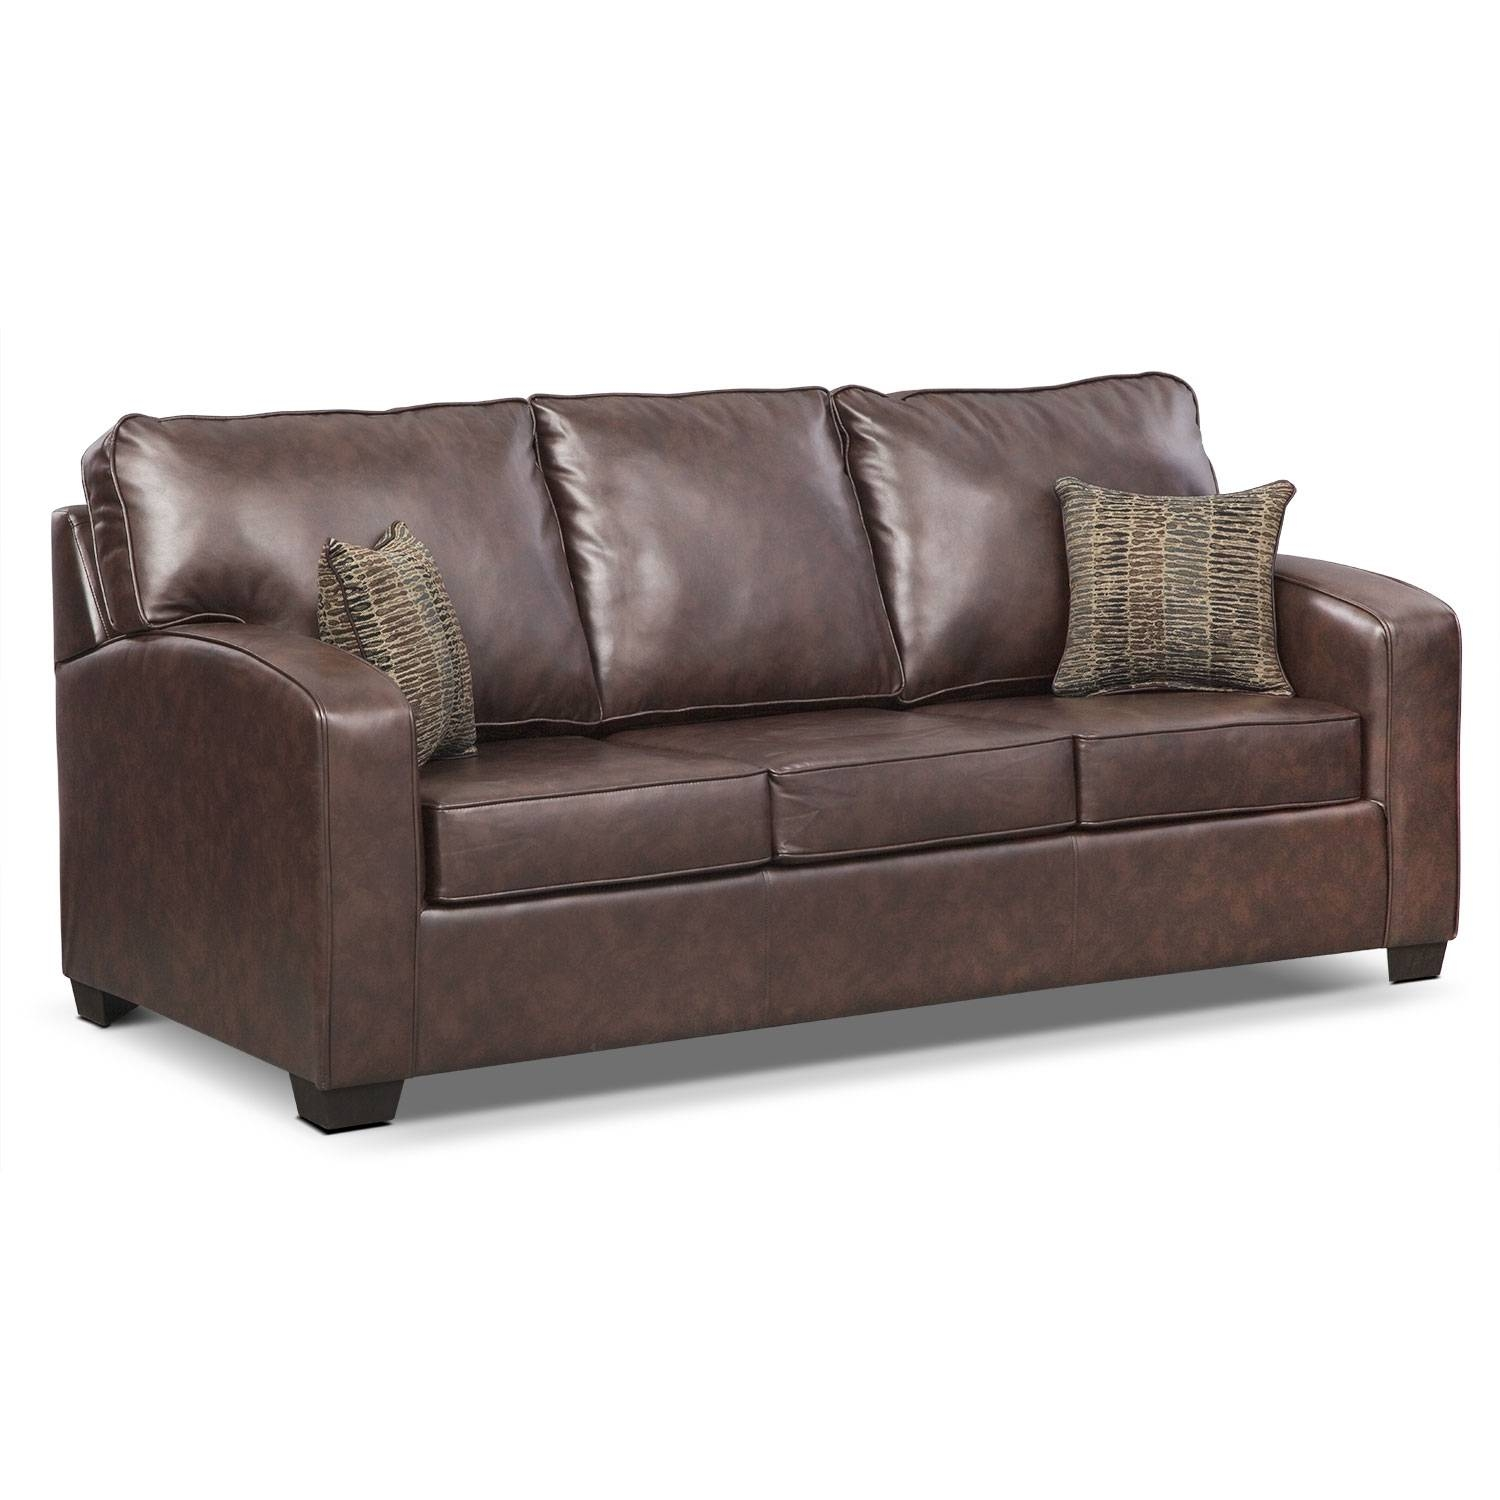 Sofa: Sears Sleeper Sofa | Sears Sofa Bed | Loveseat Cheap inside Sears Sleeper Sofas (Image 12 of 15)